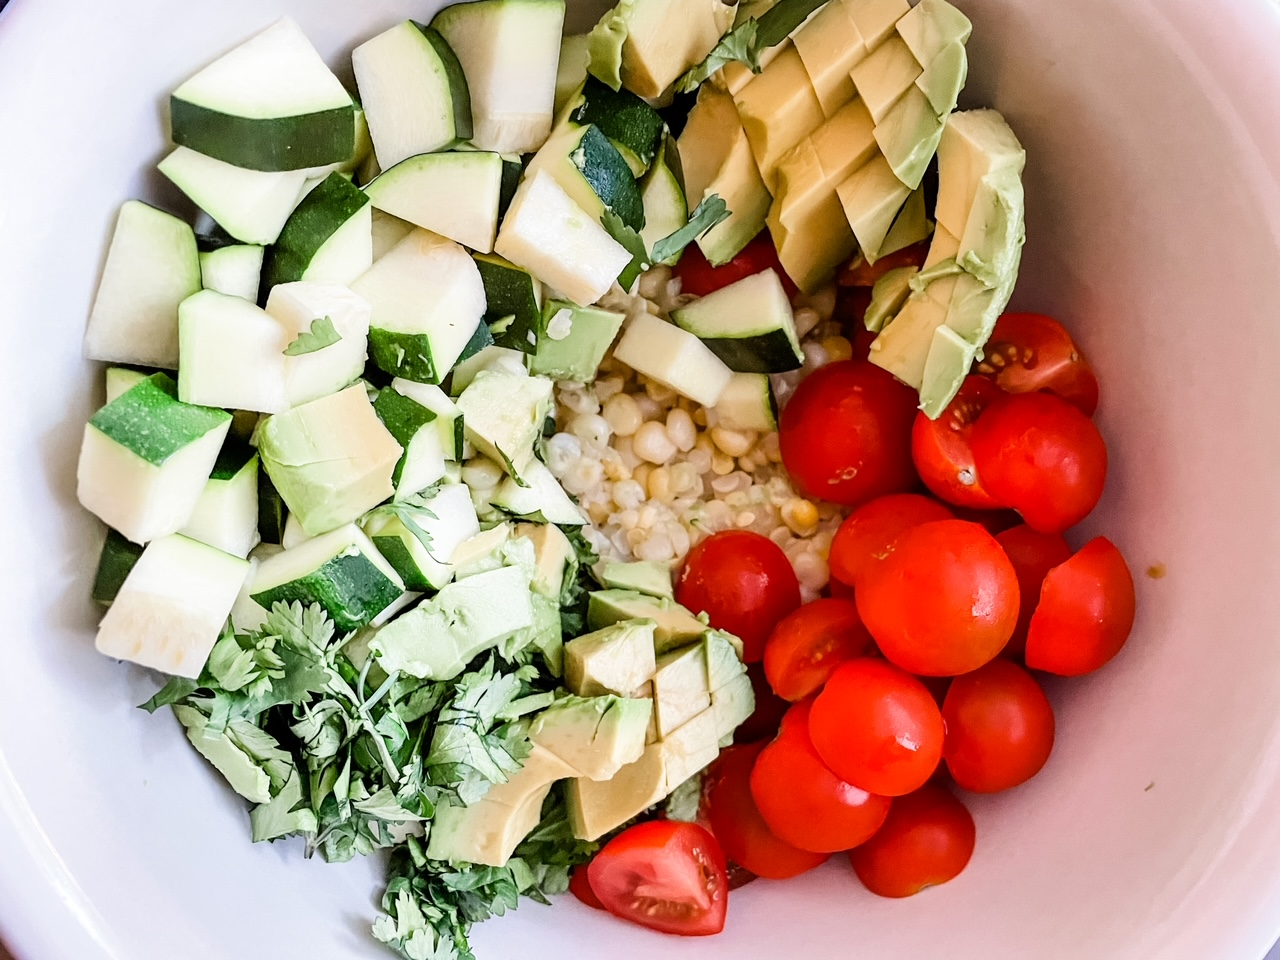 The Corn and Zucchini Salad with Avocado Dressing in a white bowl for serving